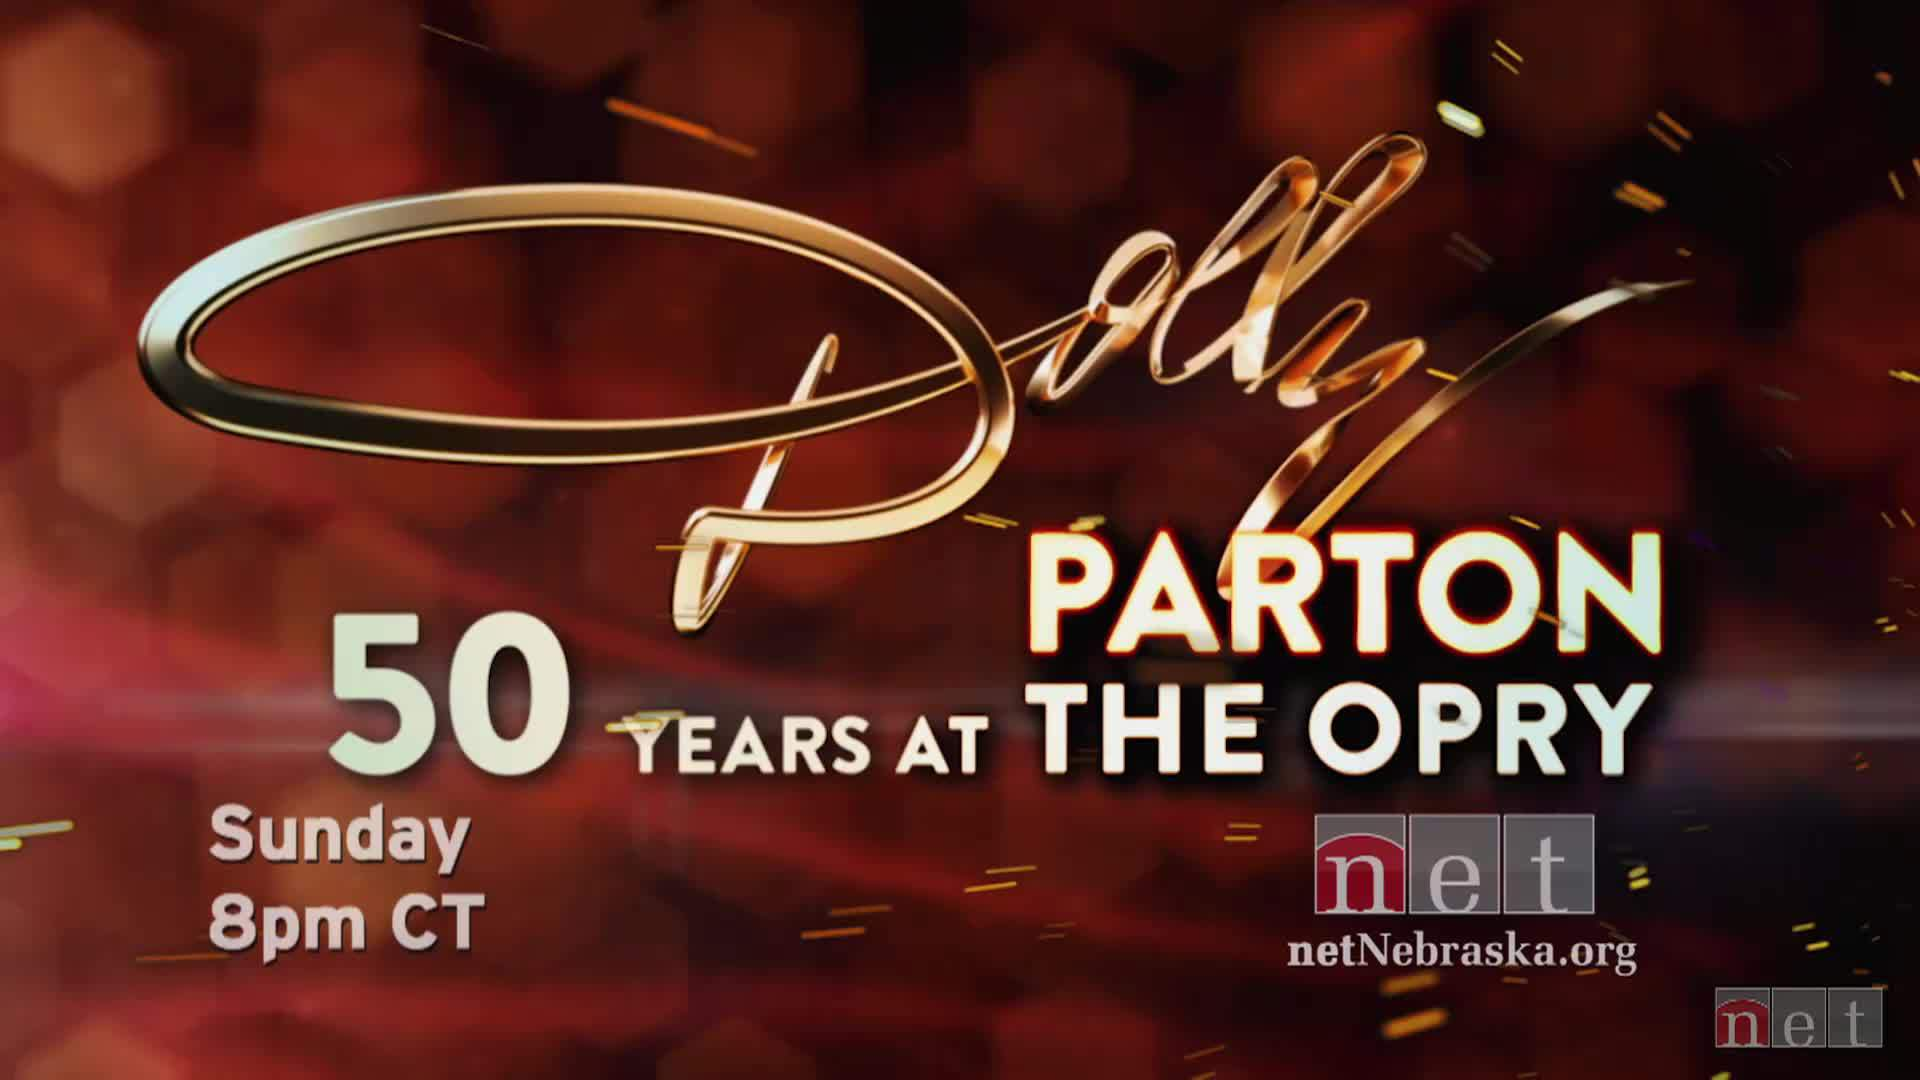 Dolly Parton & Friends: 50 Years at the Opry Sun 8pm